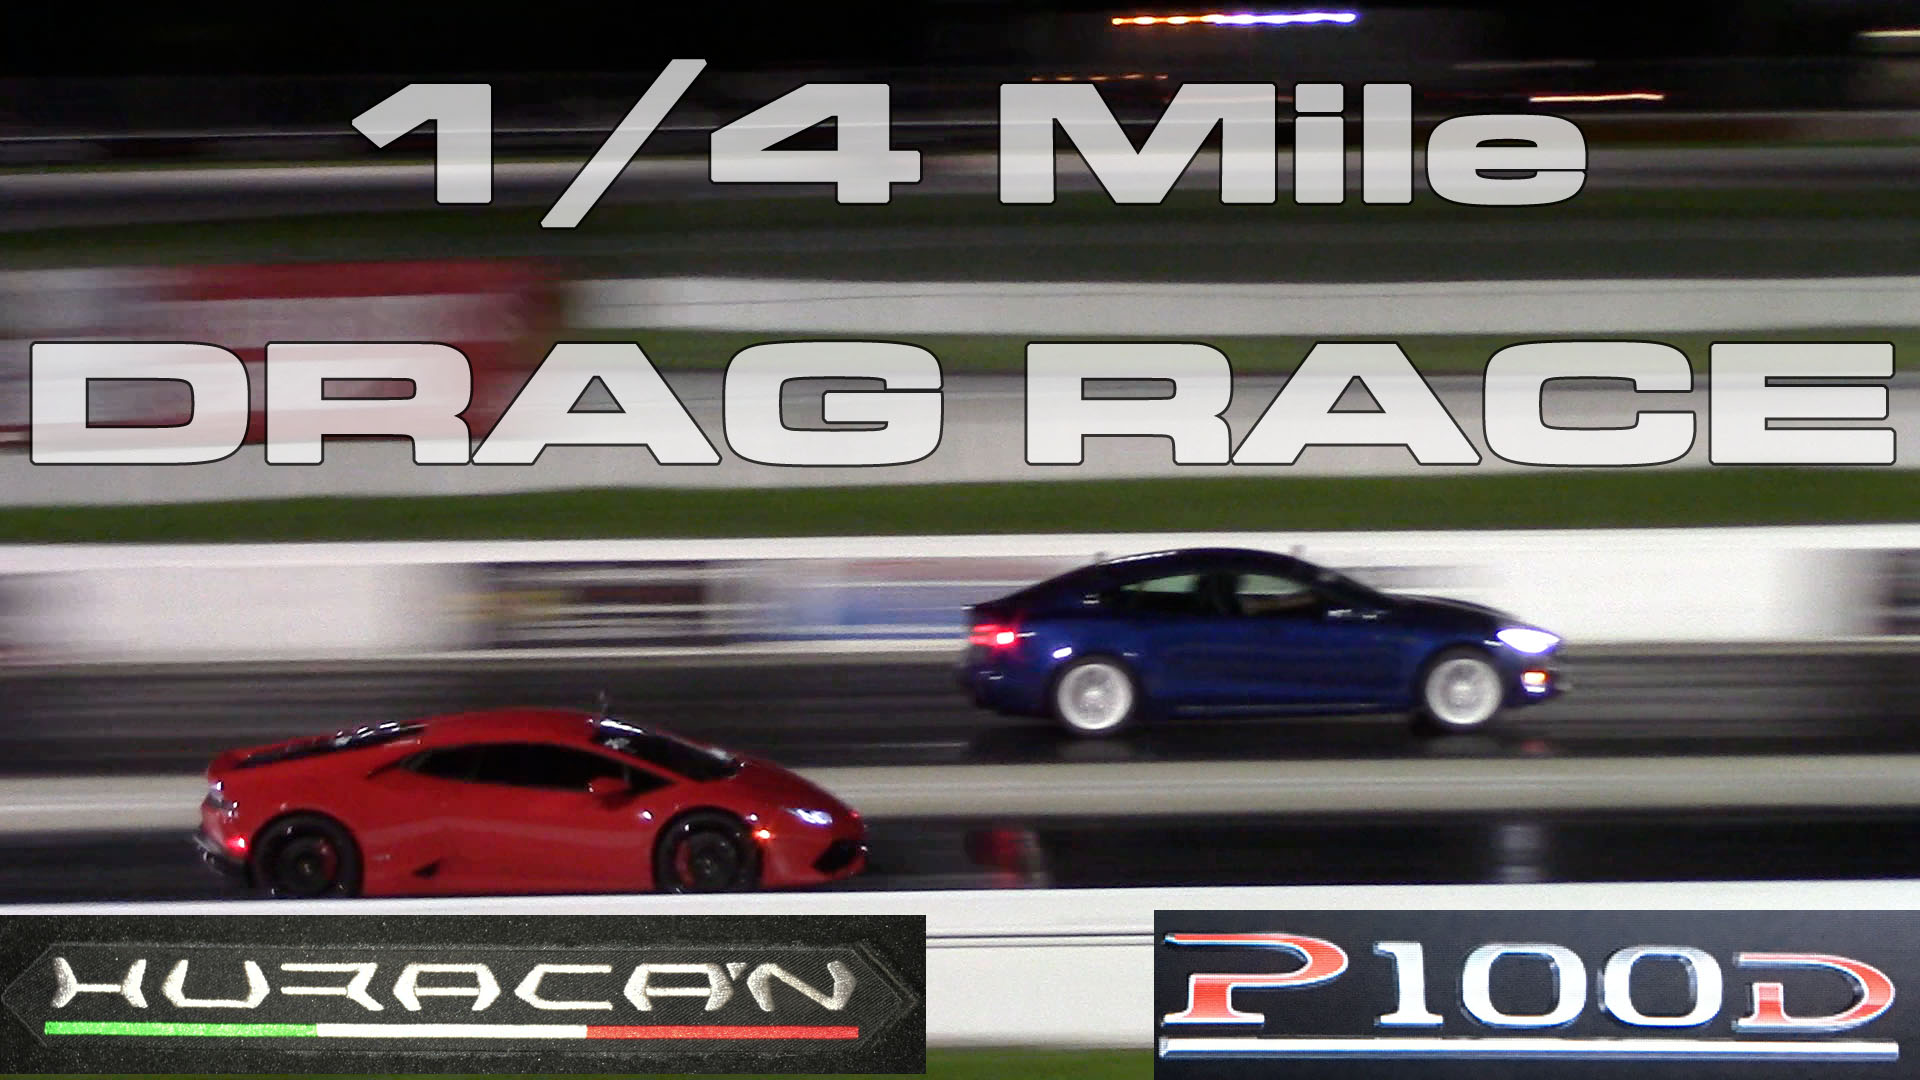 Tesla Model S P100D 1/4 Mile Testing at Palm Beach International Raceway vs a Huracan and Nissan GT-R